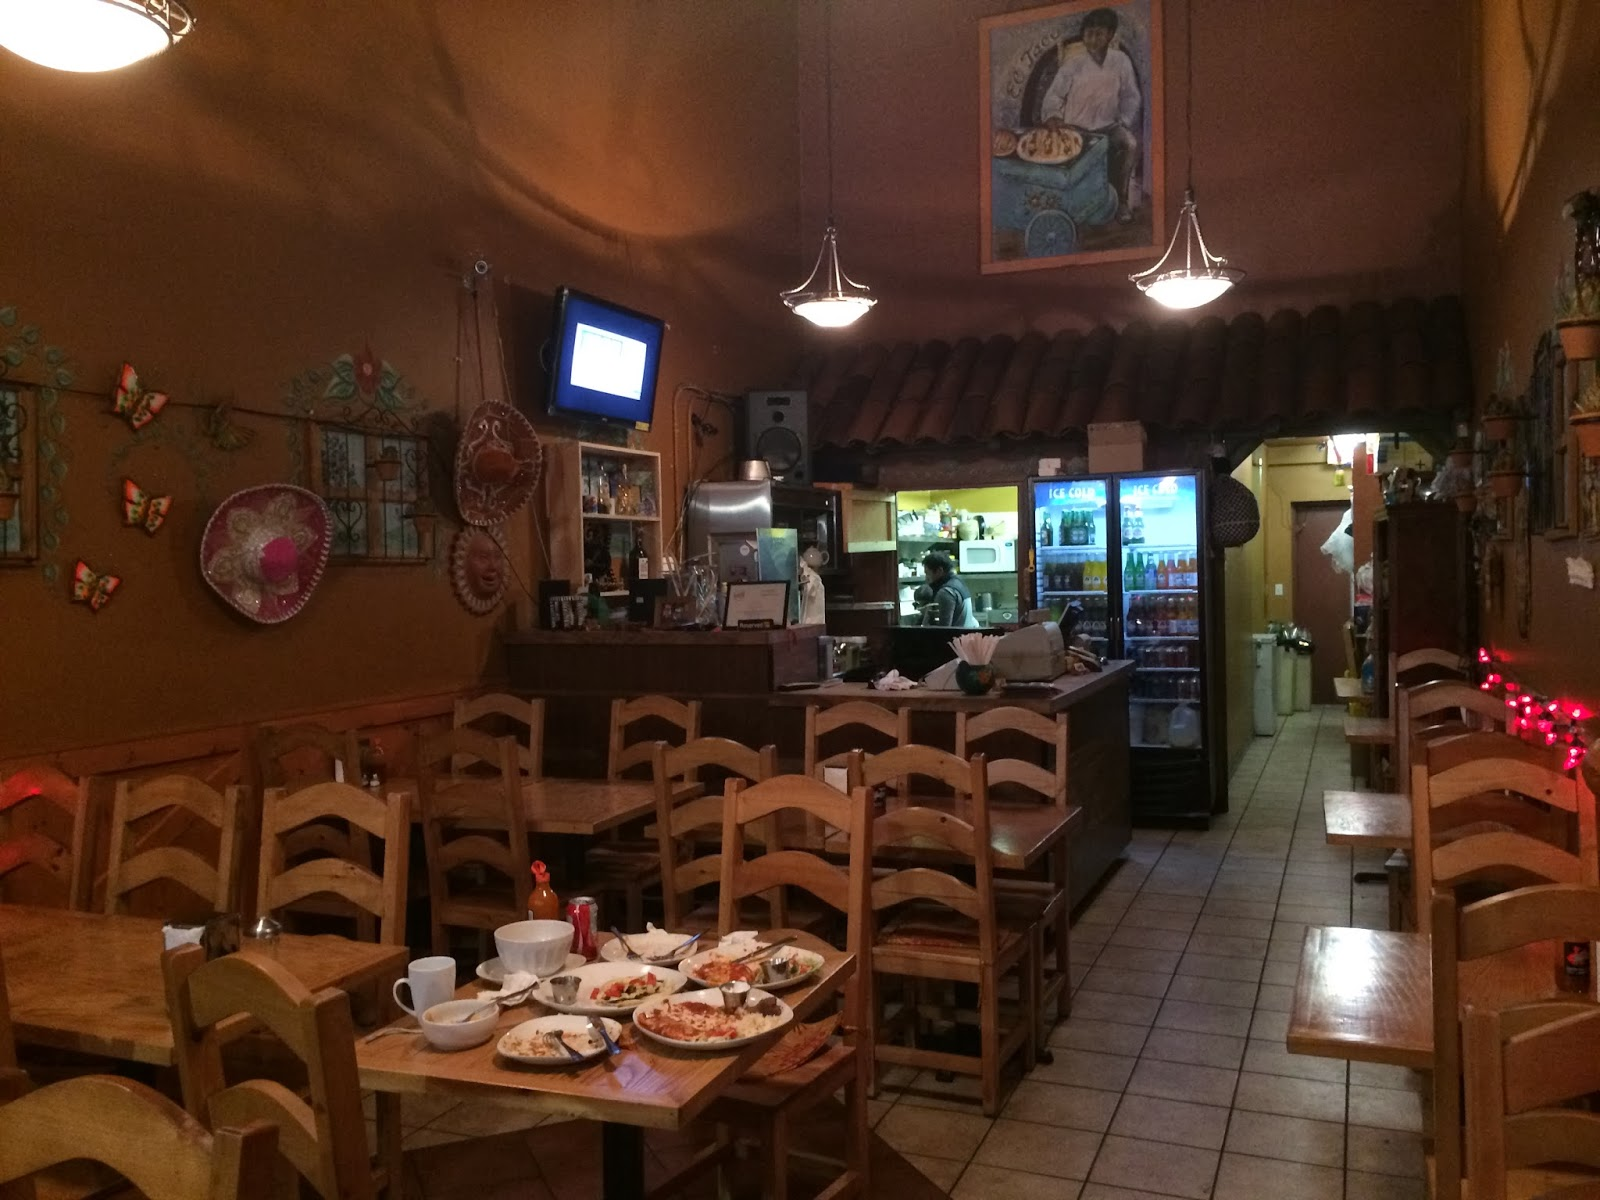 Vallarta S Mexican Restaurant Is A Small Casual Family Run Business The Interior Squeaky Clean And There Are Less Than Ten Tables